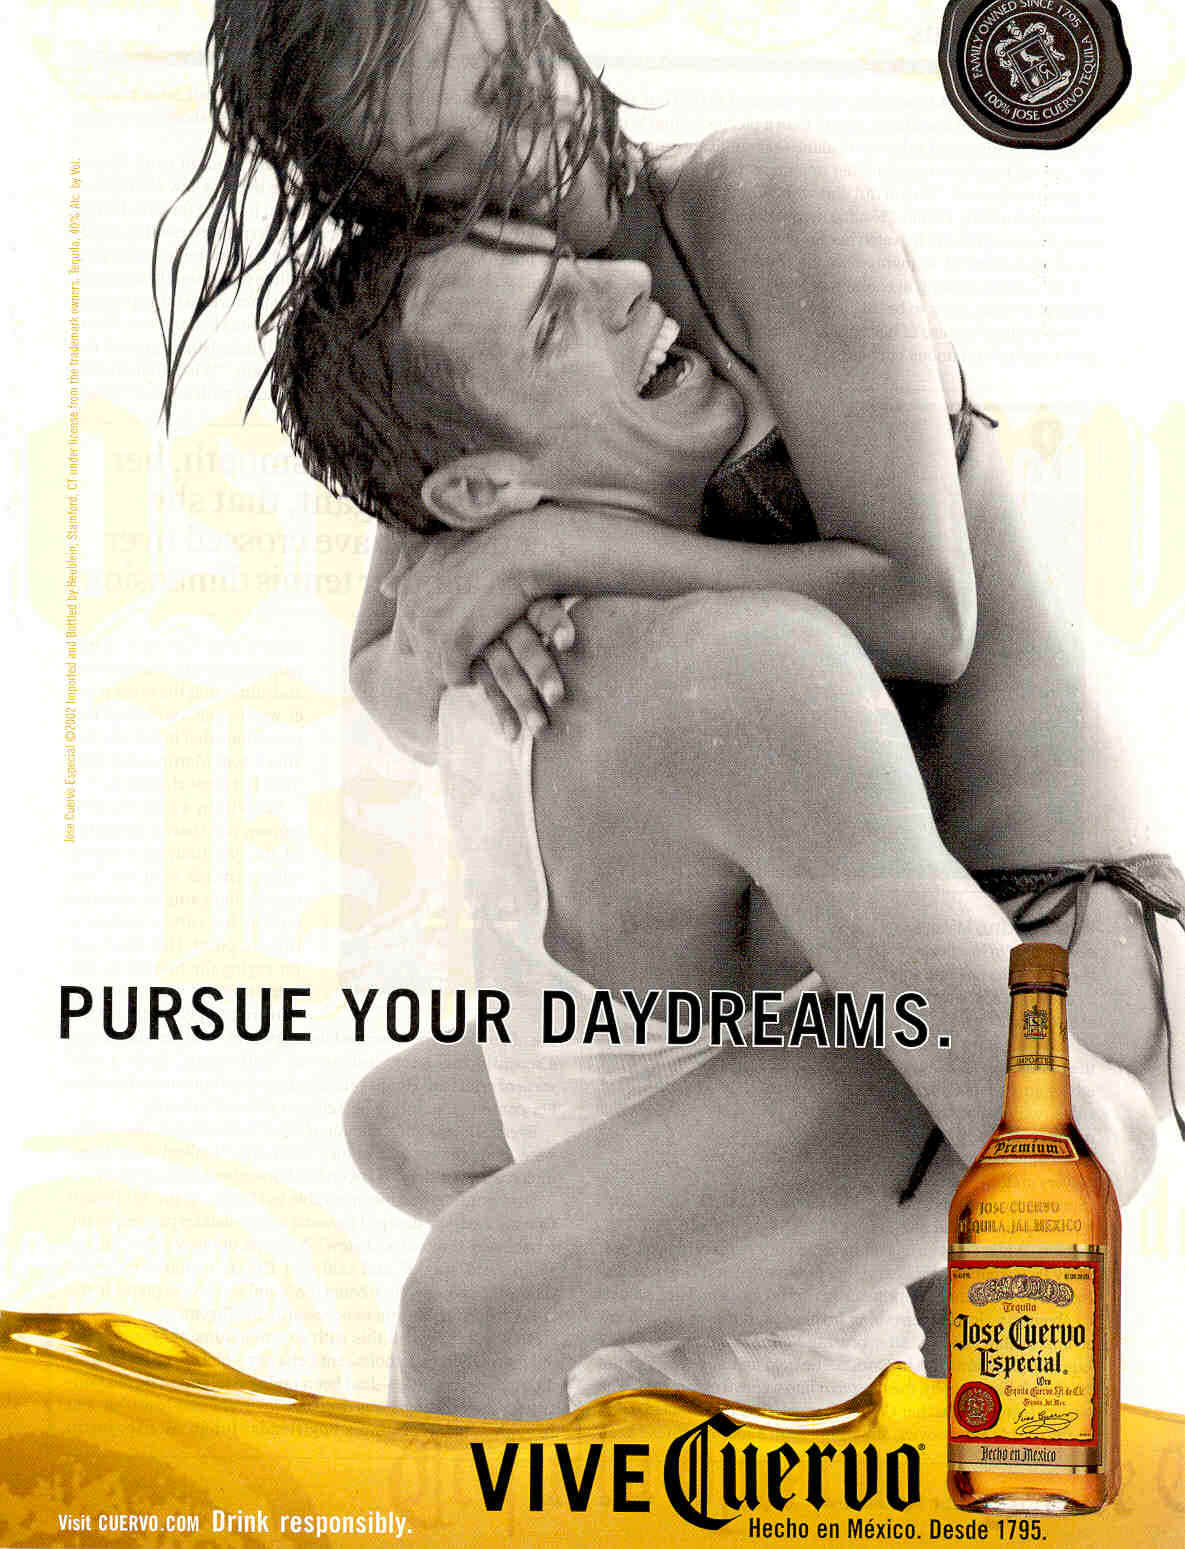 Other Uses for Alcohol http://jdeleeuw.edublogs.org/2011/04/05/does-alcohol-advertising-cause-abuse-to-youth/